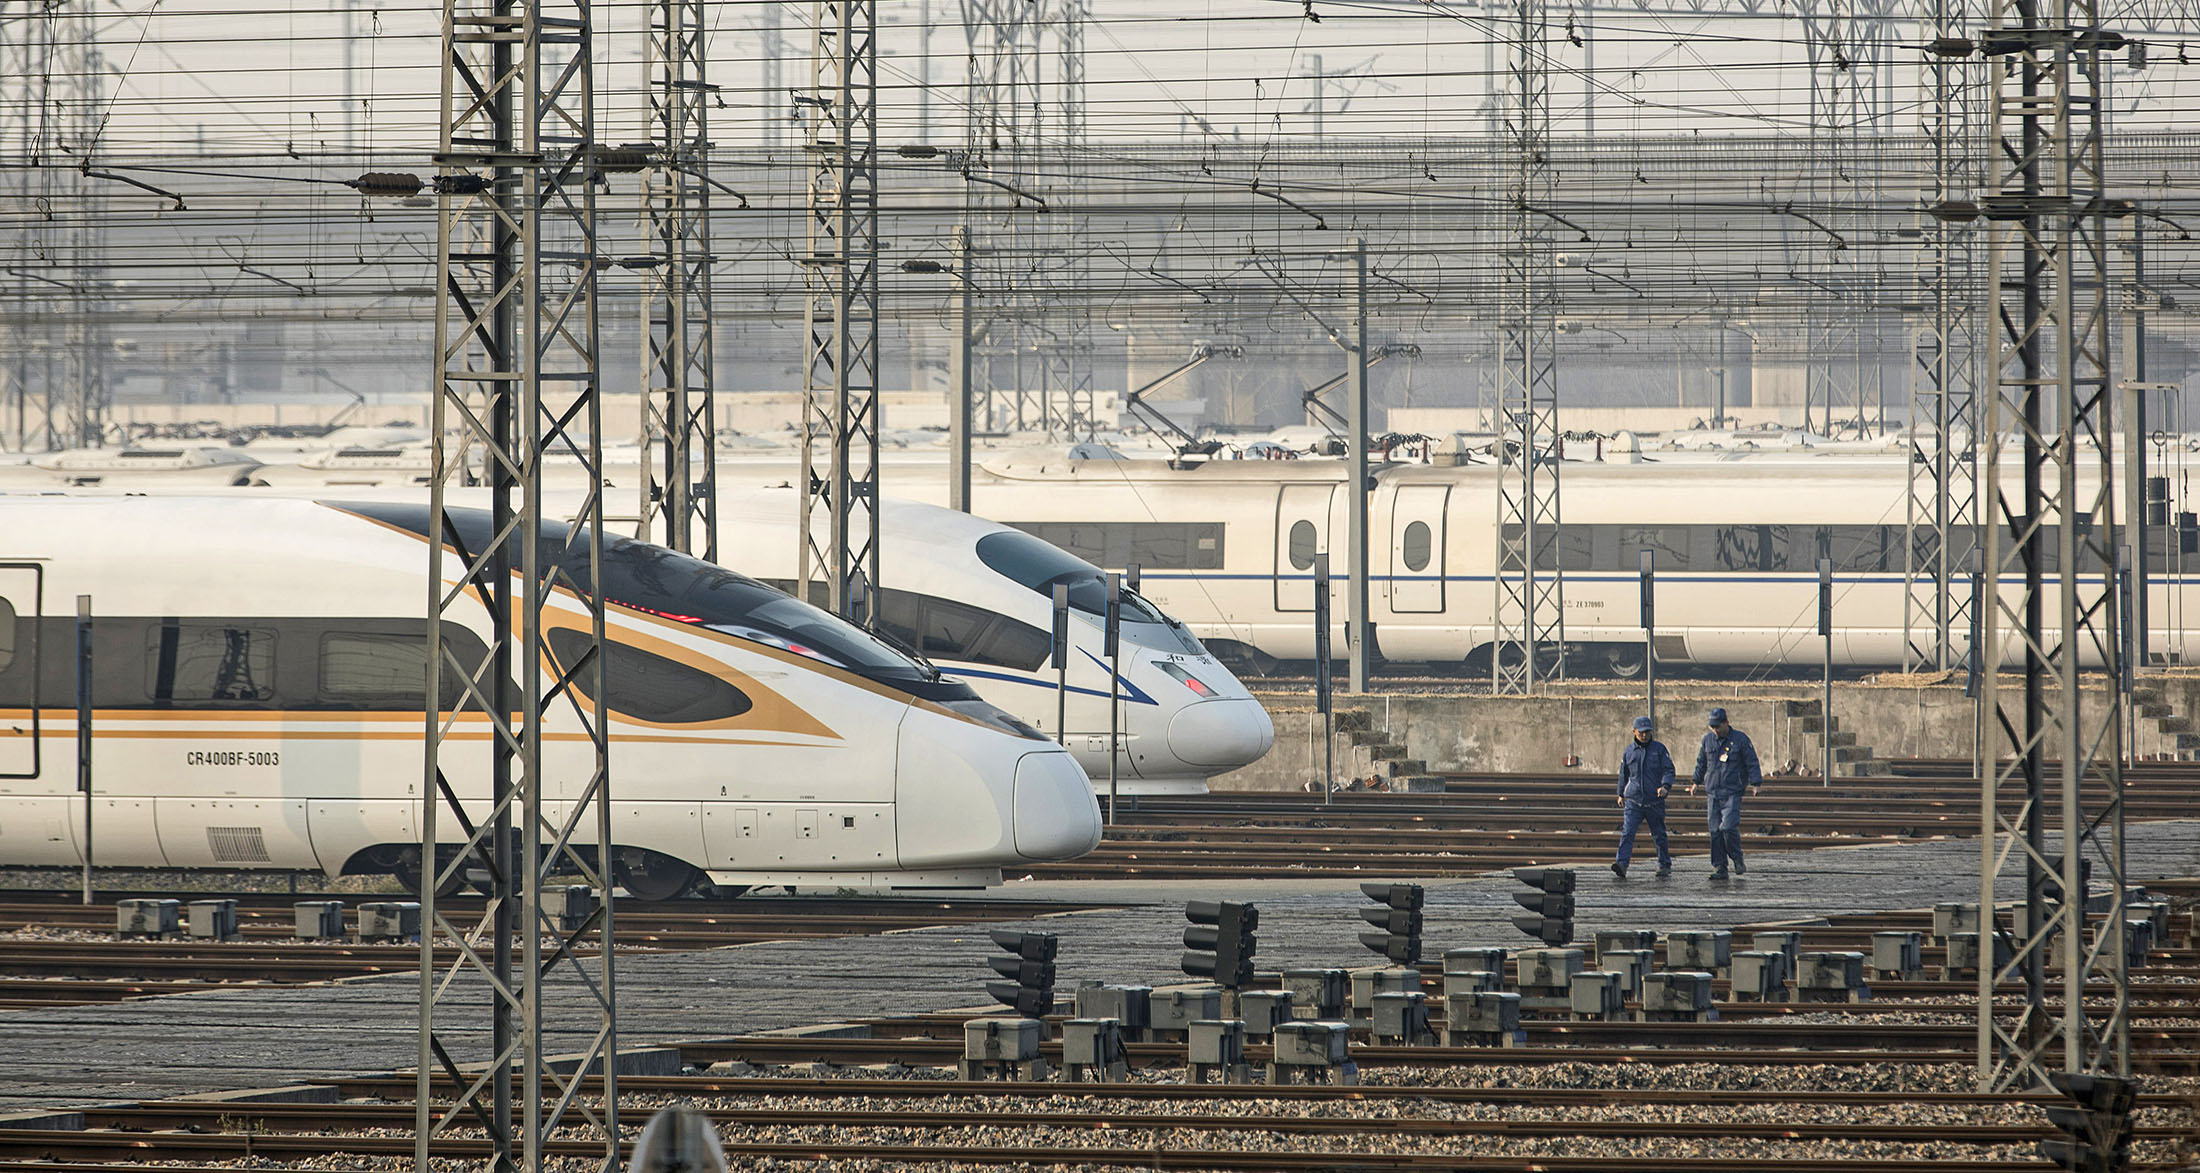 bloomberg.com - China's Bullet Trains Are Coming For Hong Kong's Airlines